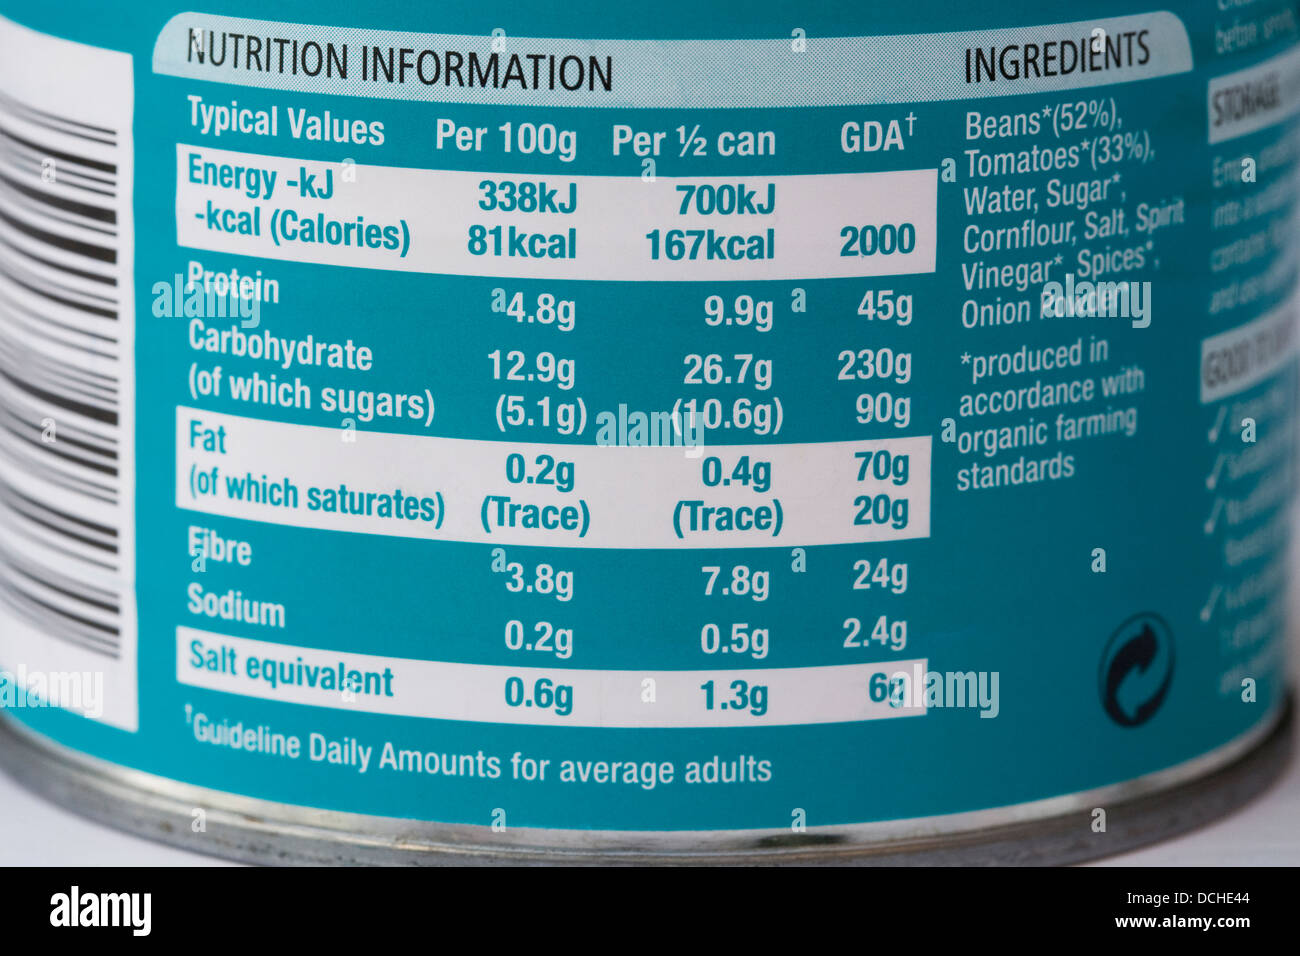 Nutritional information on a baked bean can. - Stock Image